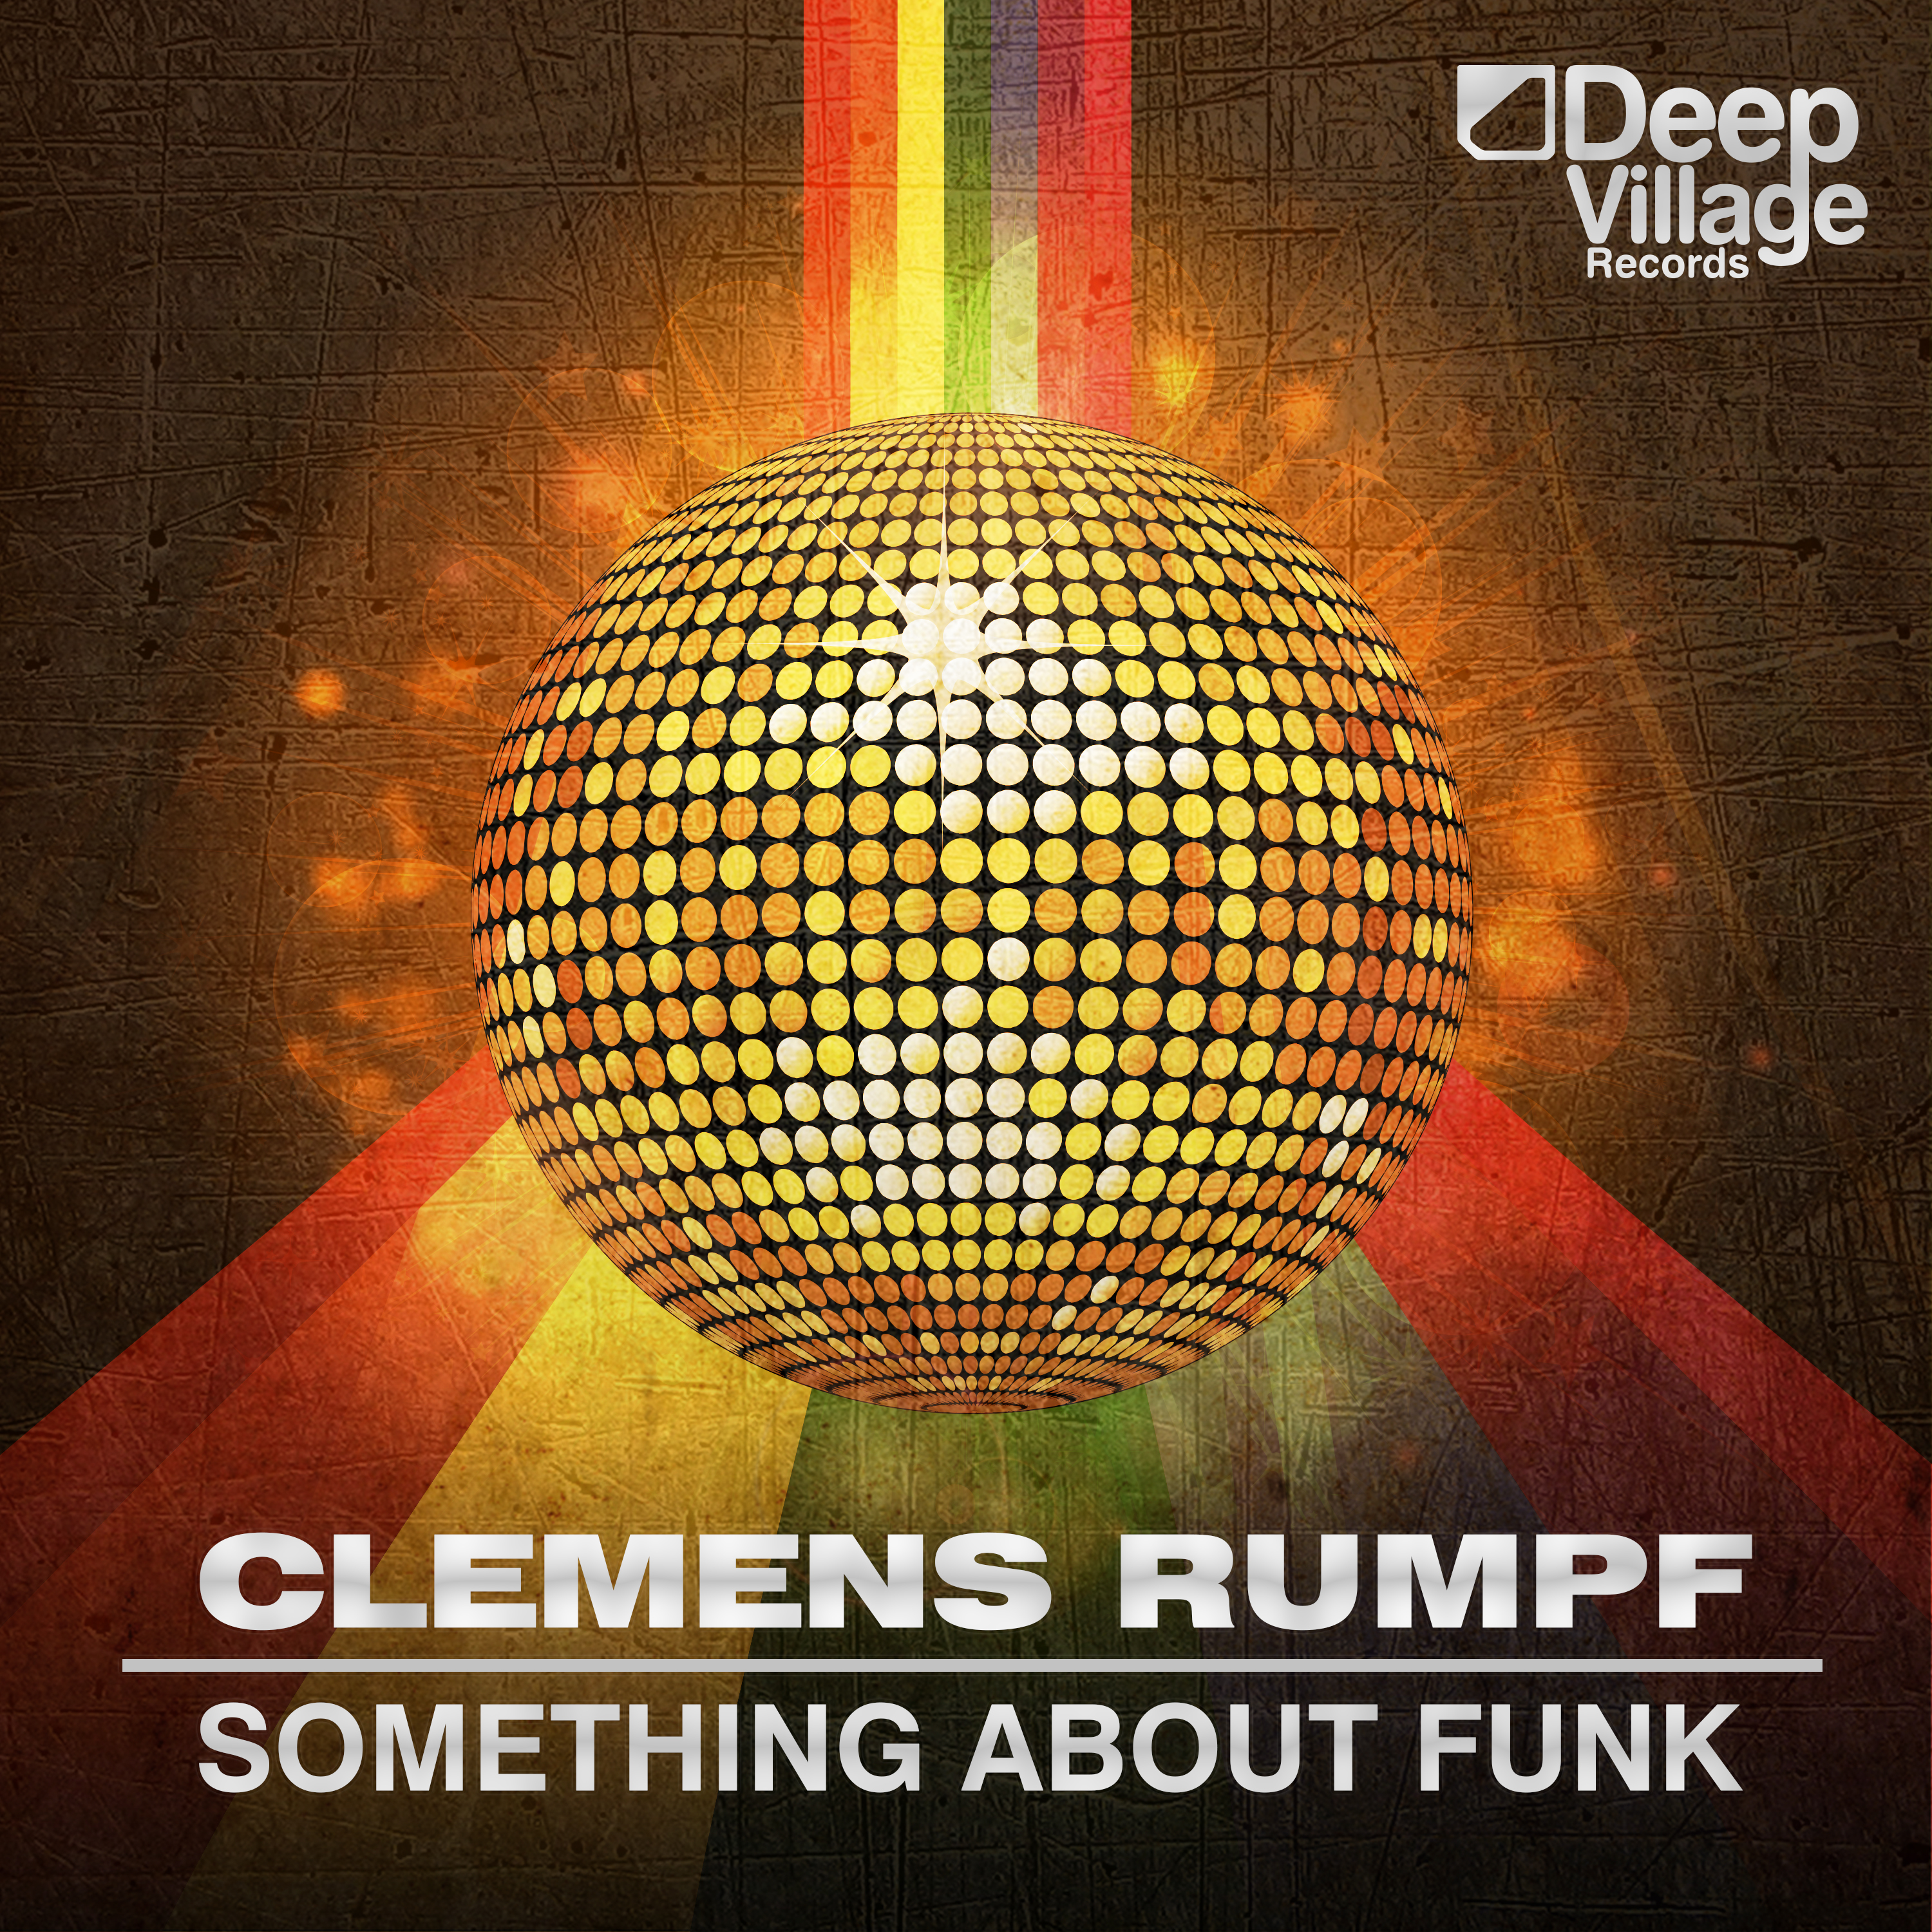 Something About Funk (DVR022)